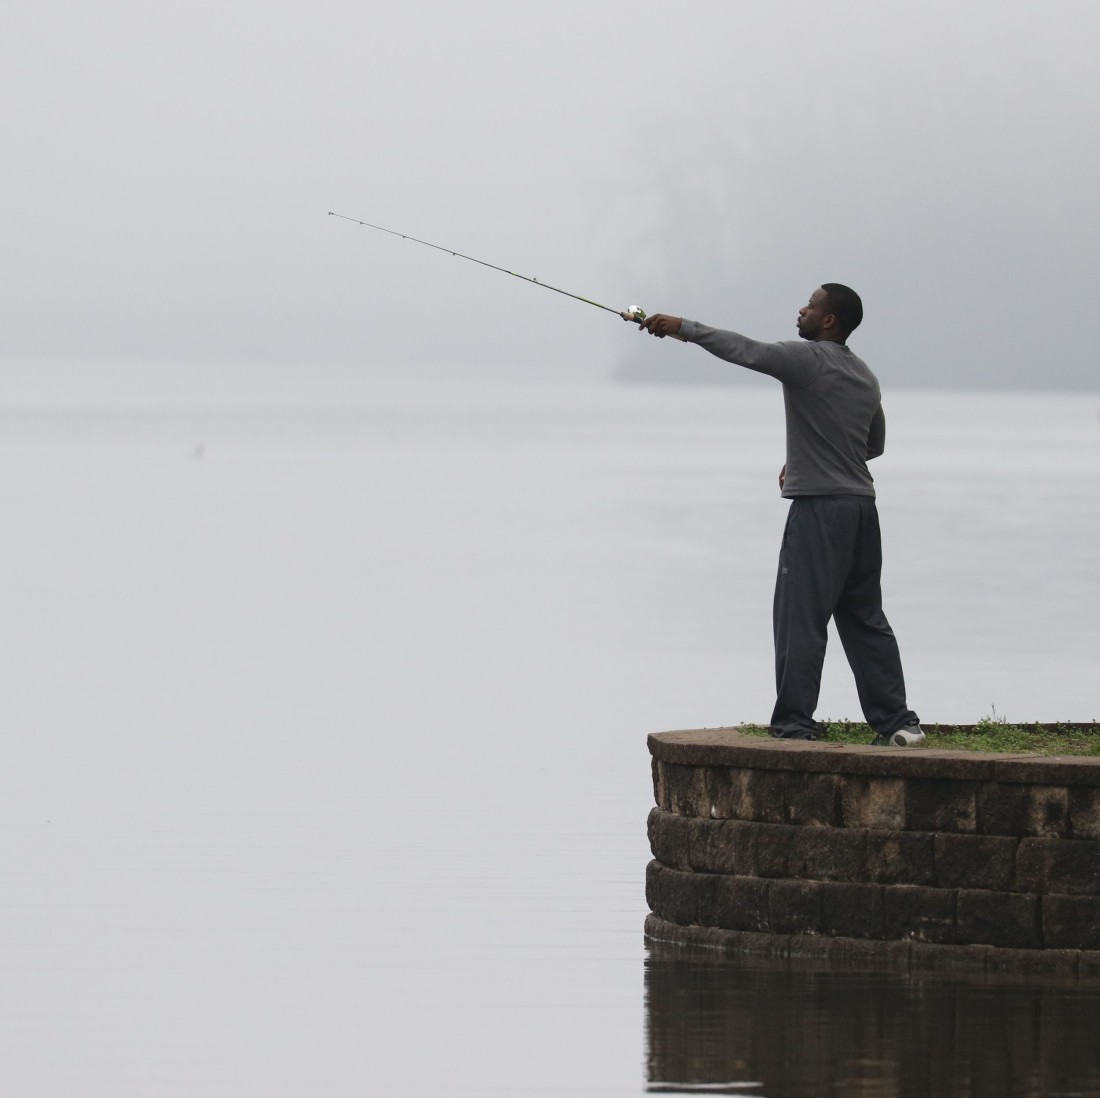 A gentleman fishing